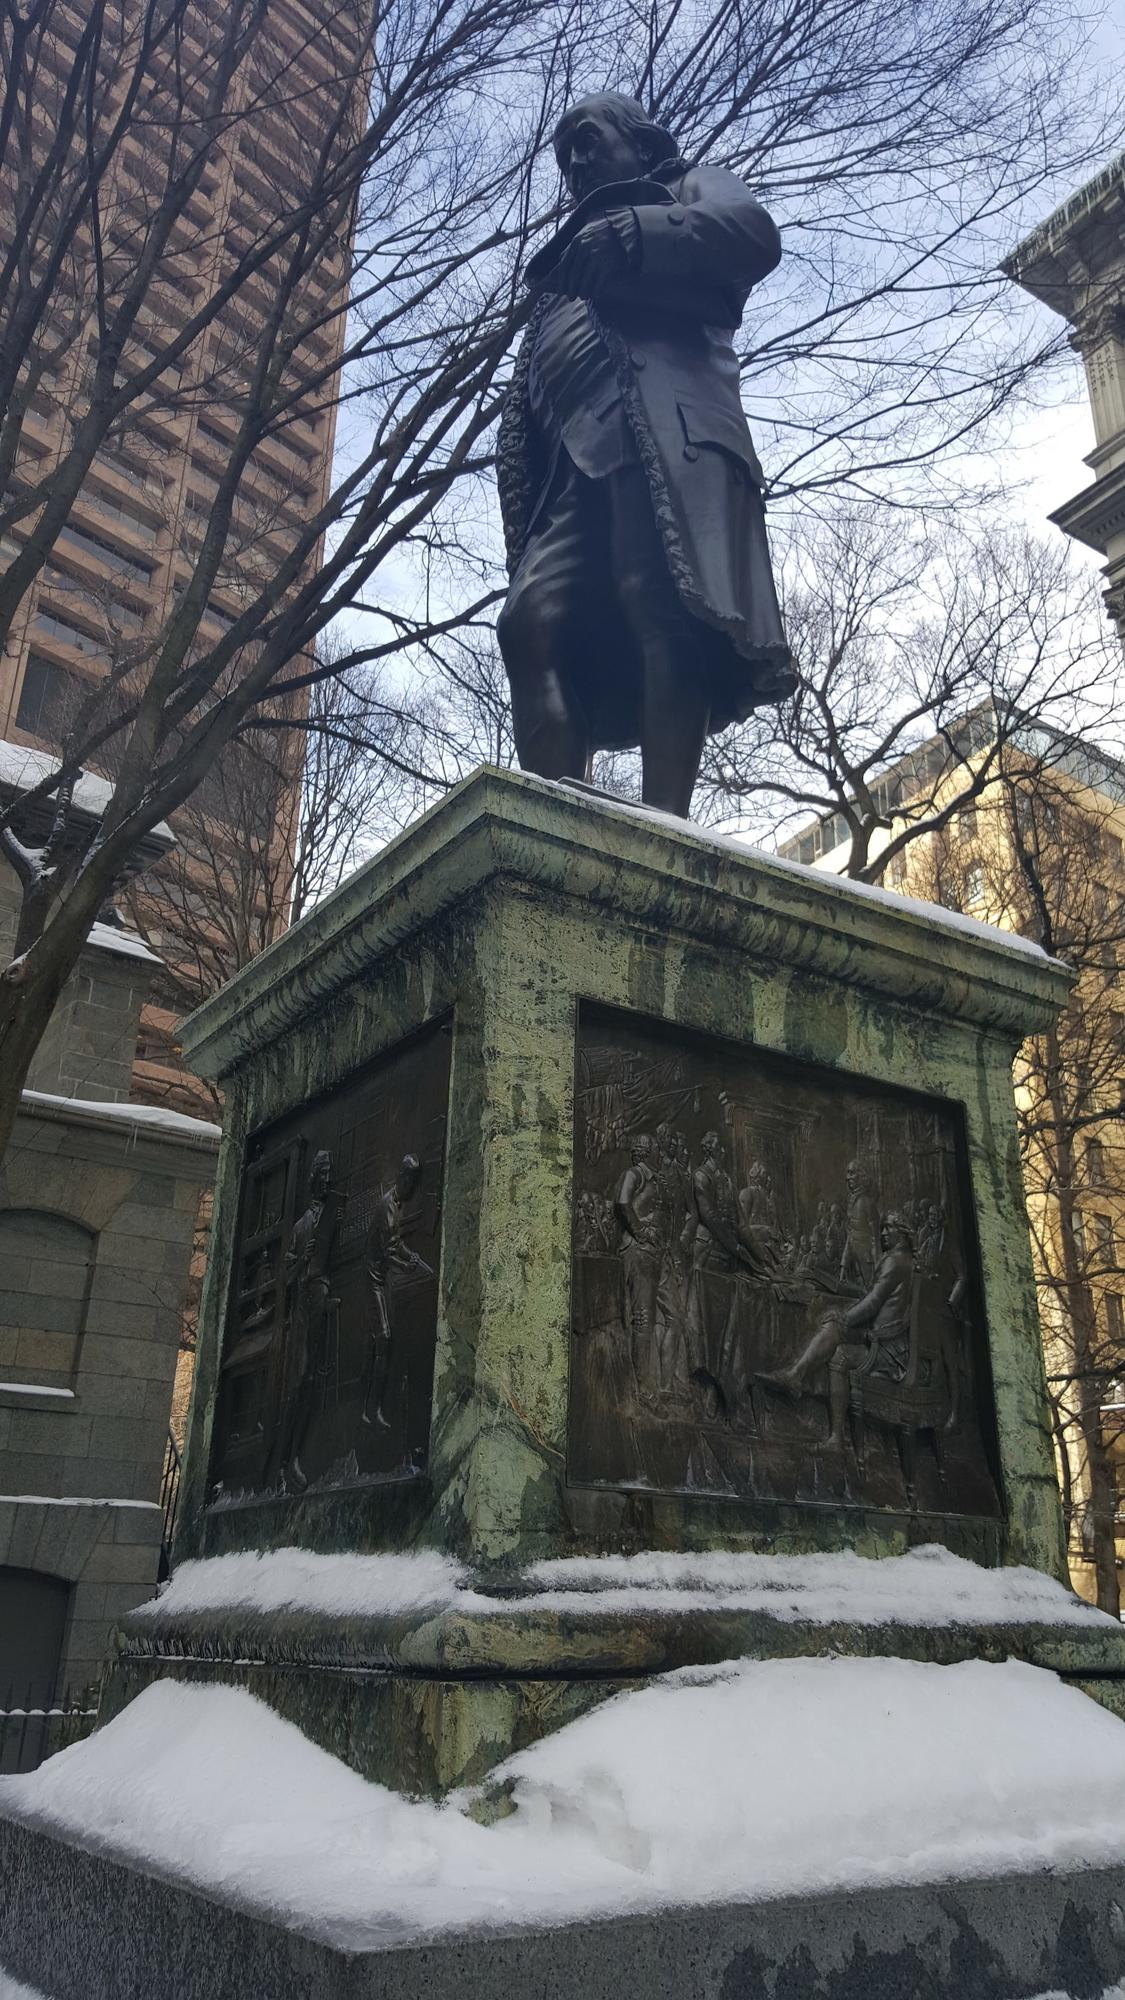 Benjamin Franklin Statue in Winter